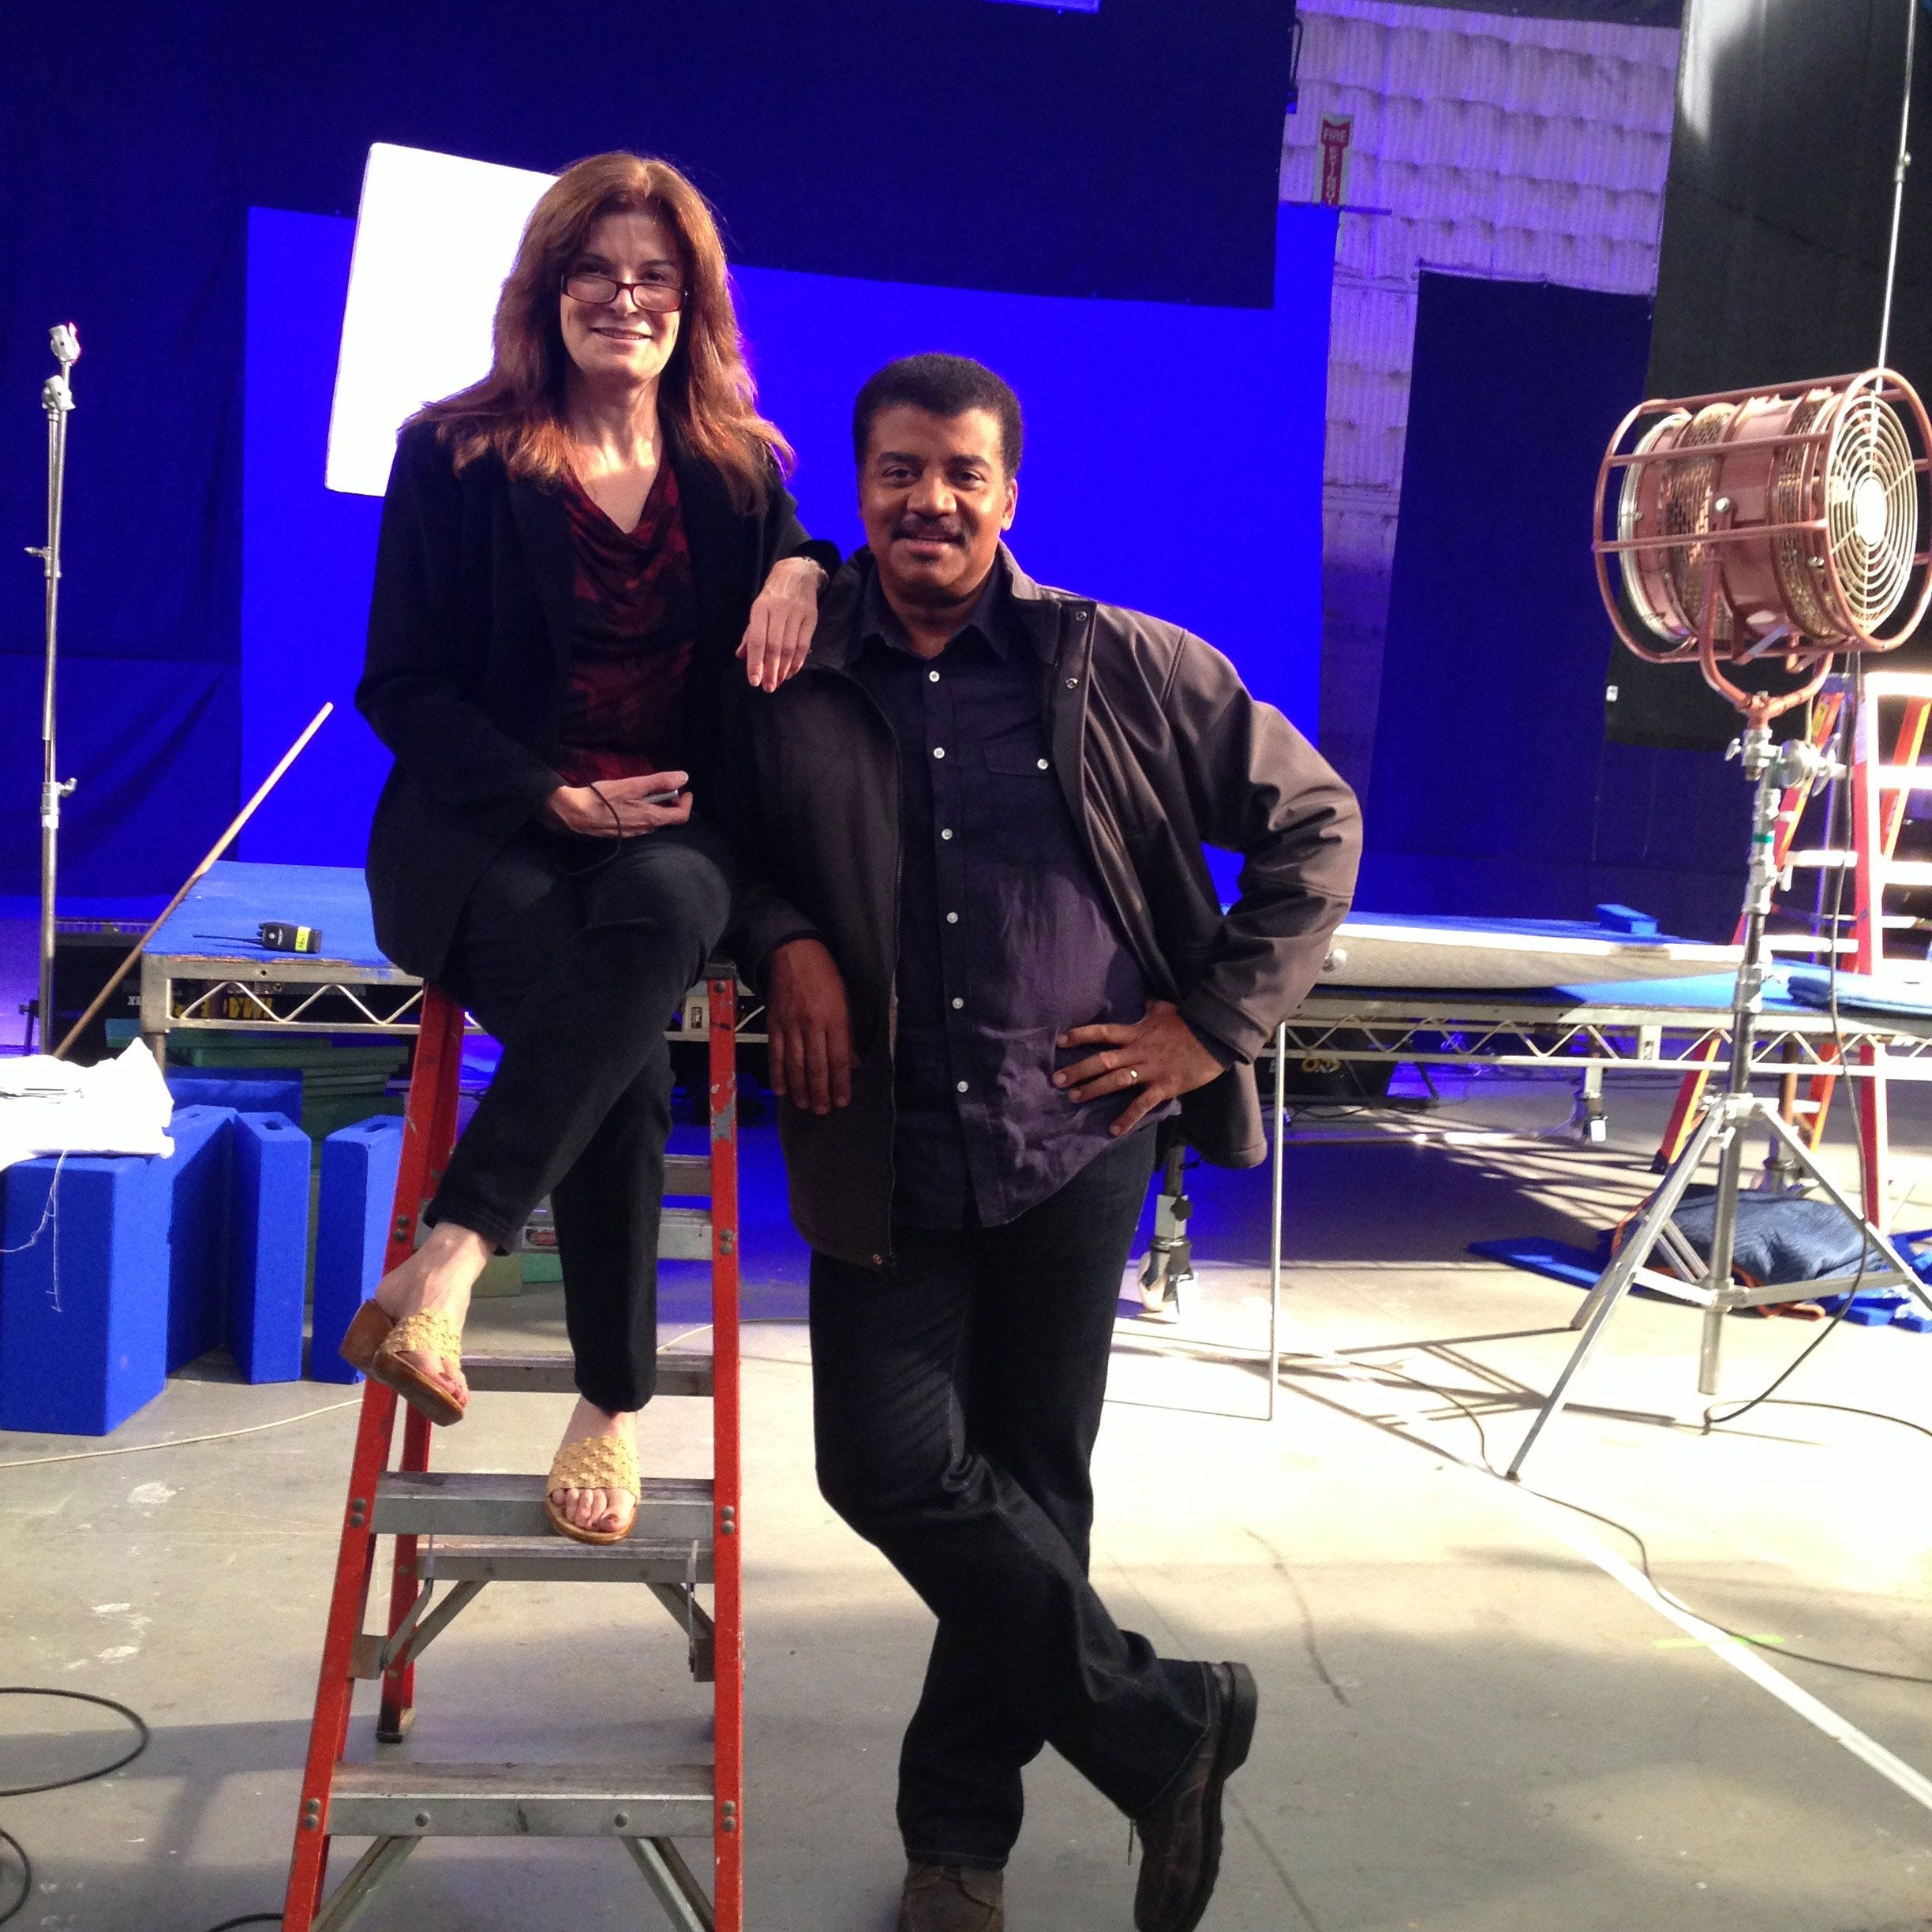 Carolyn Porco and Neil deGrasse Tyson. Credit: Ryan Hadaller